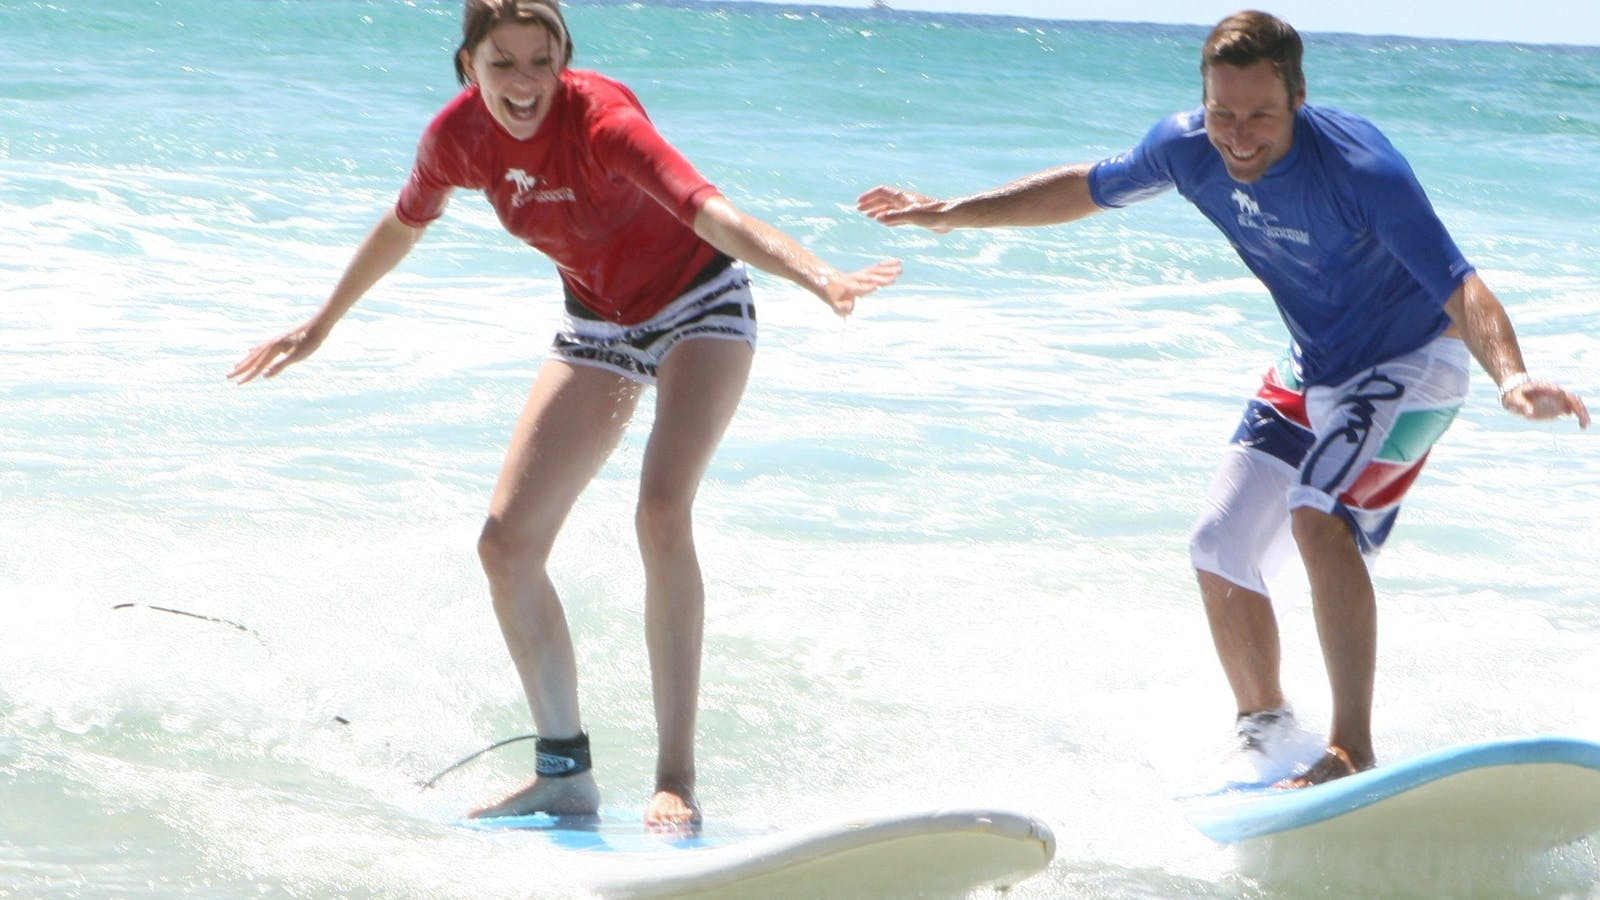 private surf lessons Surf school Surfers Paradise Learn to surfe